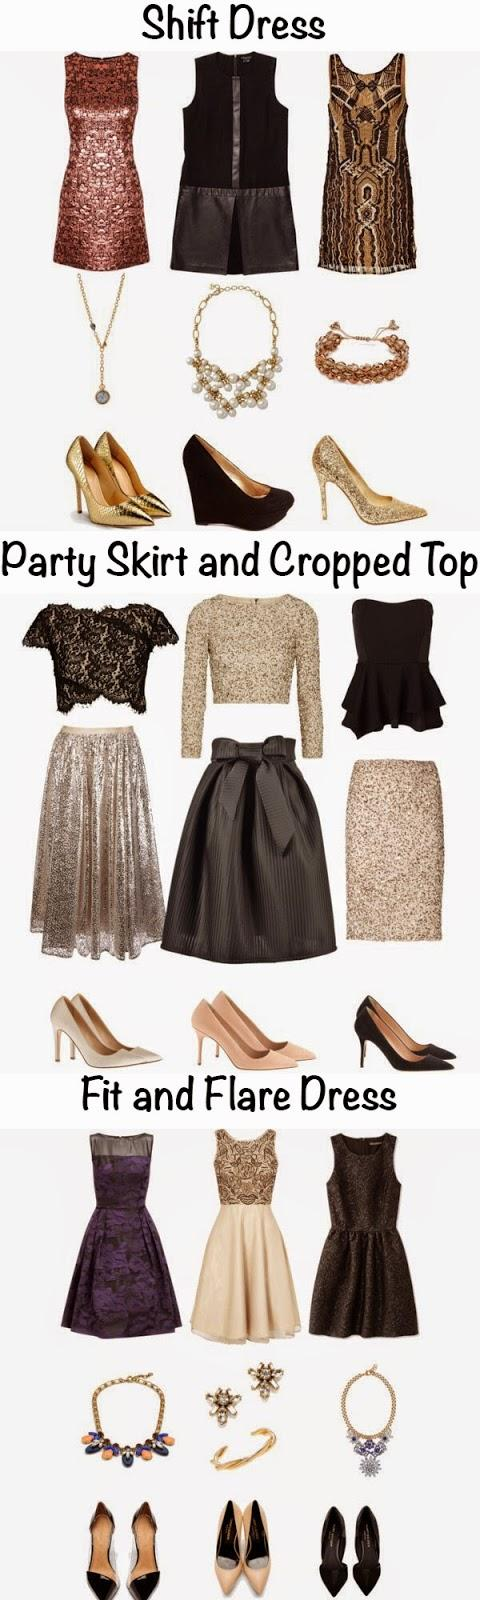 60c9f3e19161 Fashion, NYE, New Year style, party, party outfit, winter, ...